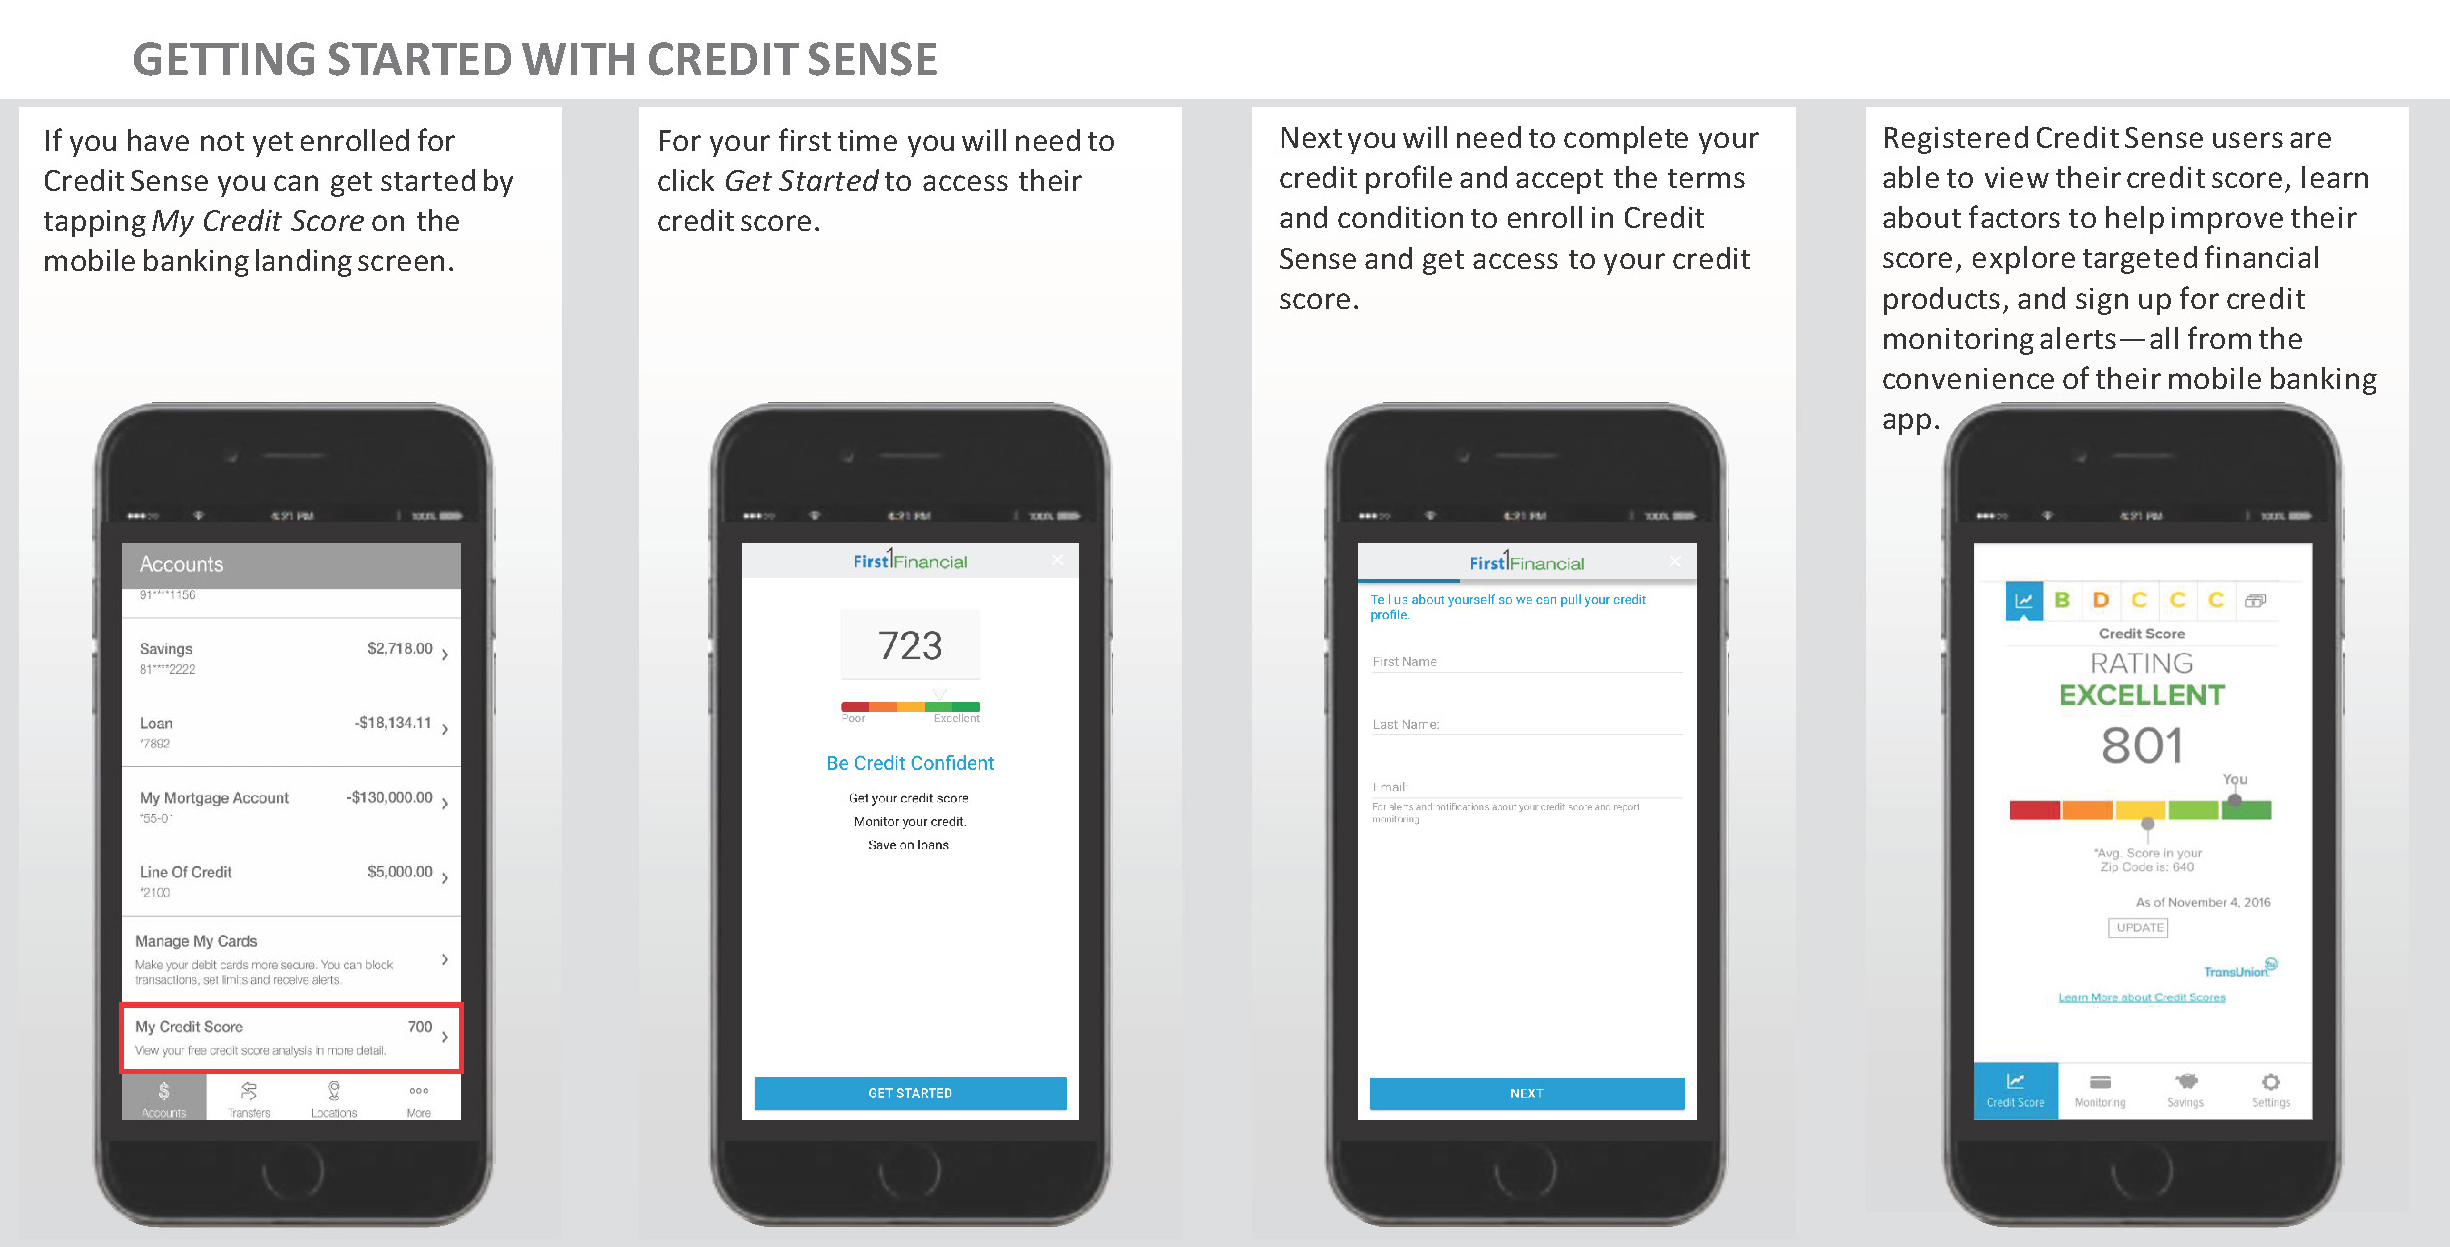 Credit Sense-Getting Started Guide